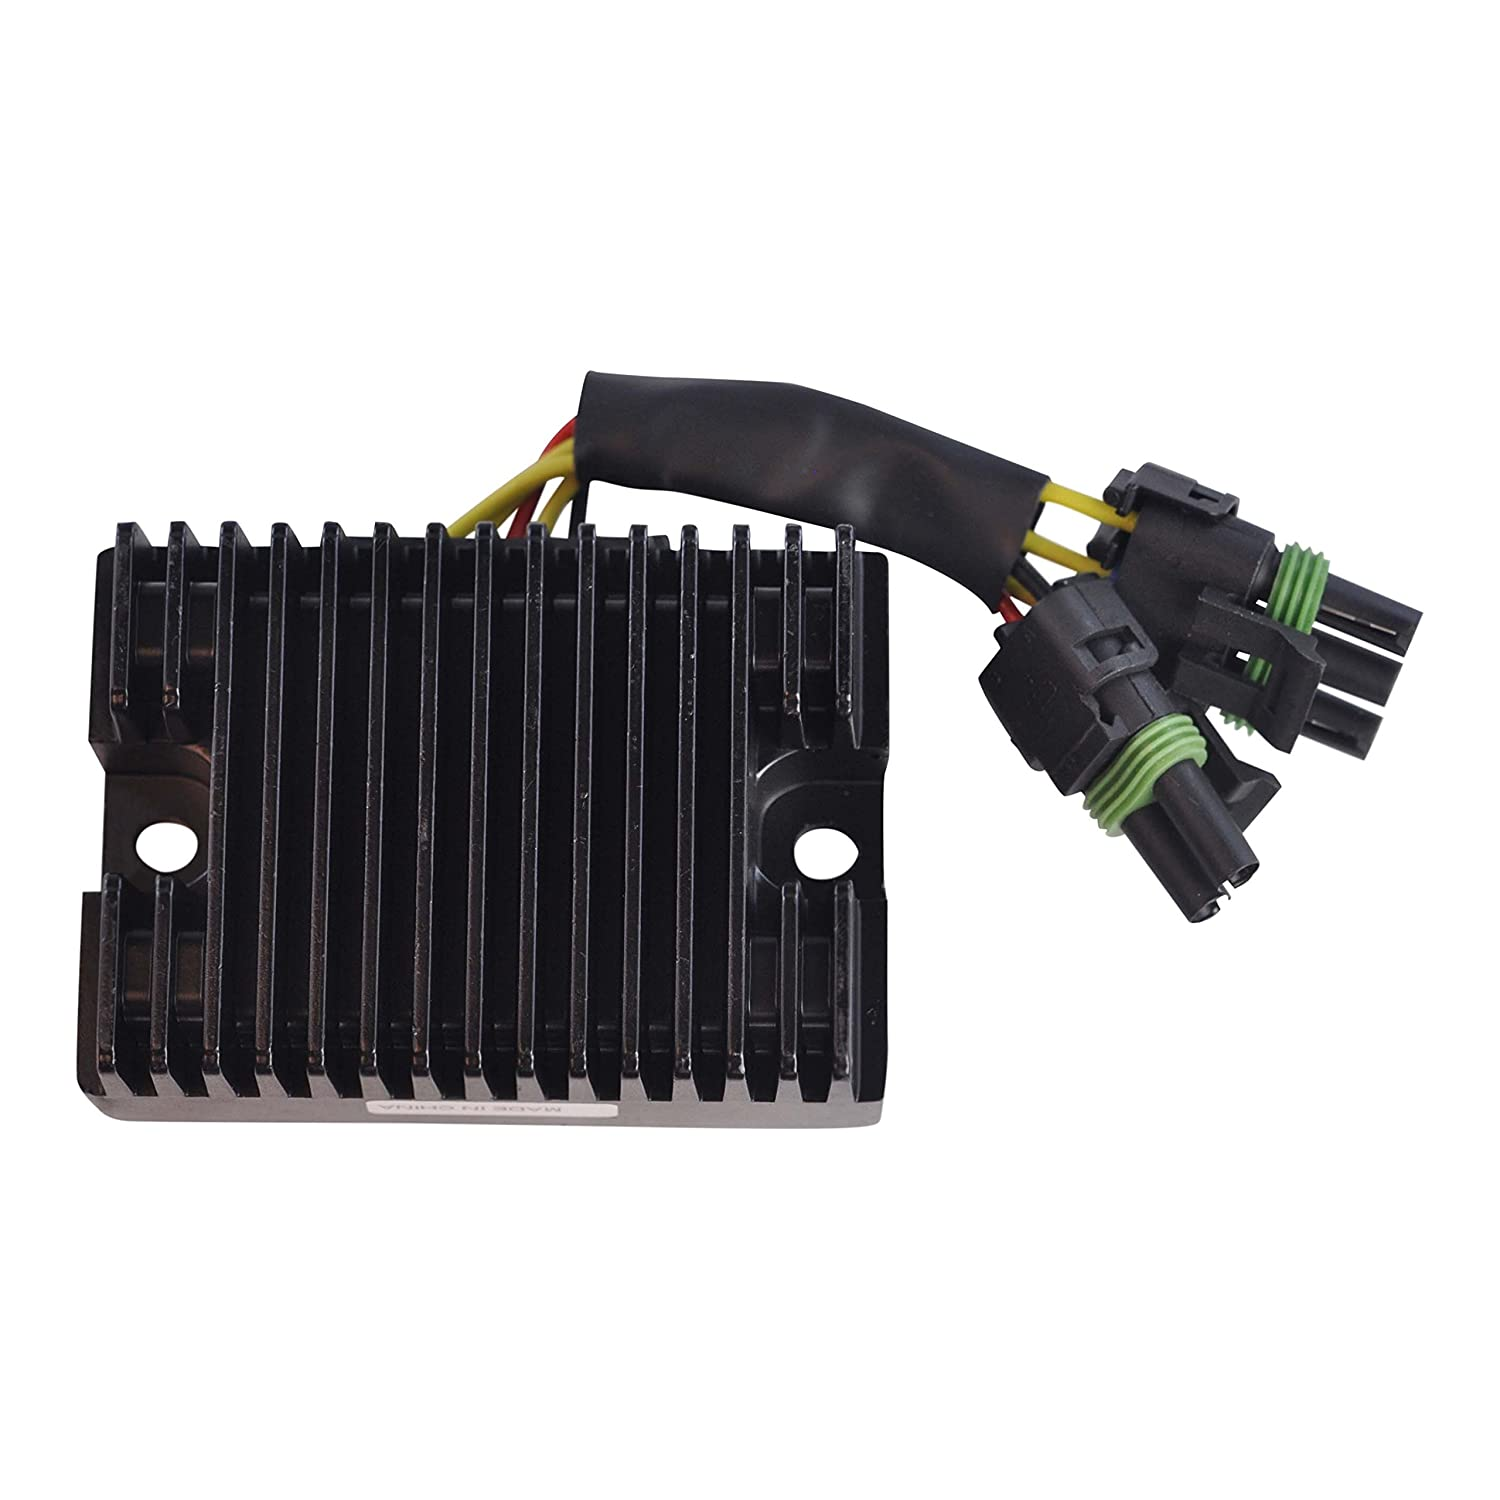 Voltage Regulator For Sea Doo 780 GTX 800 GTI 951 GTX/LRV / RX/XP / Sportster 1998-2006 / Can-Am DS 650 2000-2002 OEM Repl.# 278001241 278001554 RMSTATOR